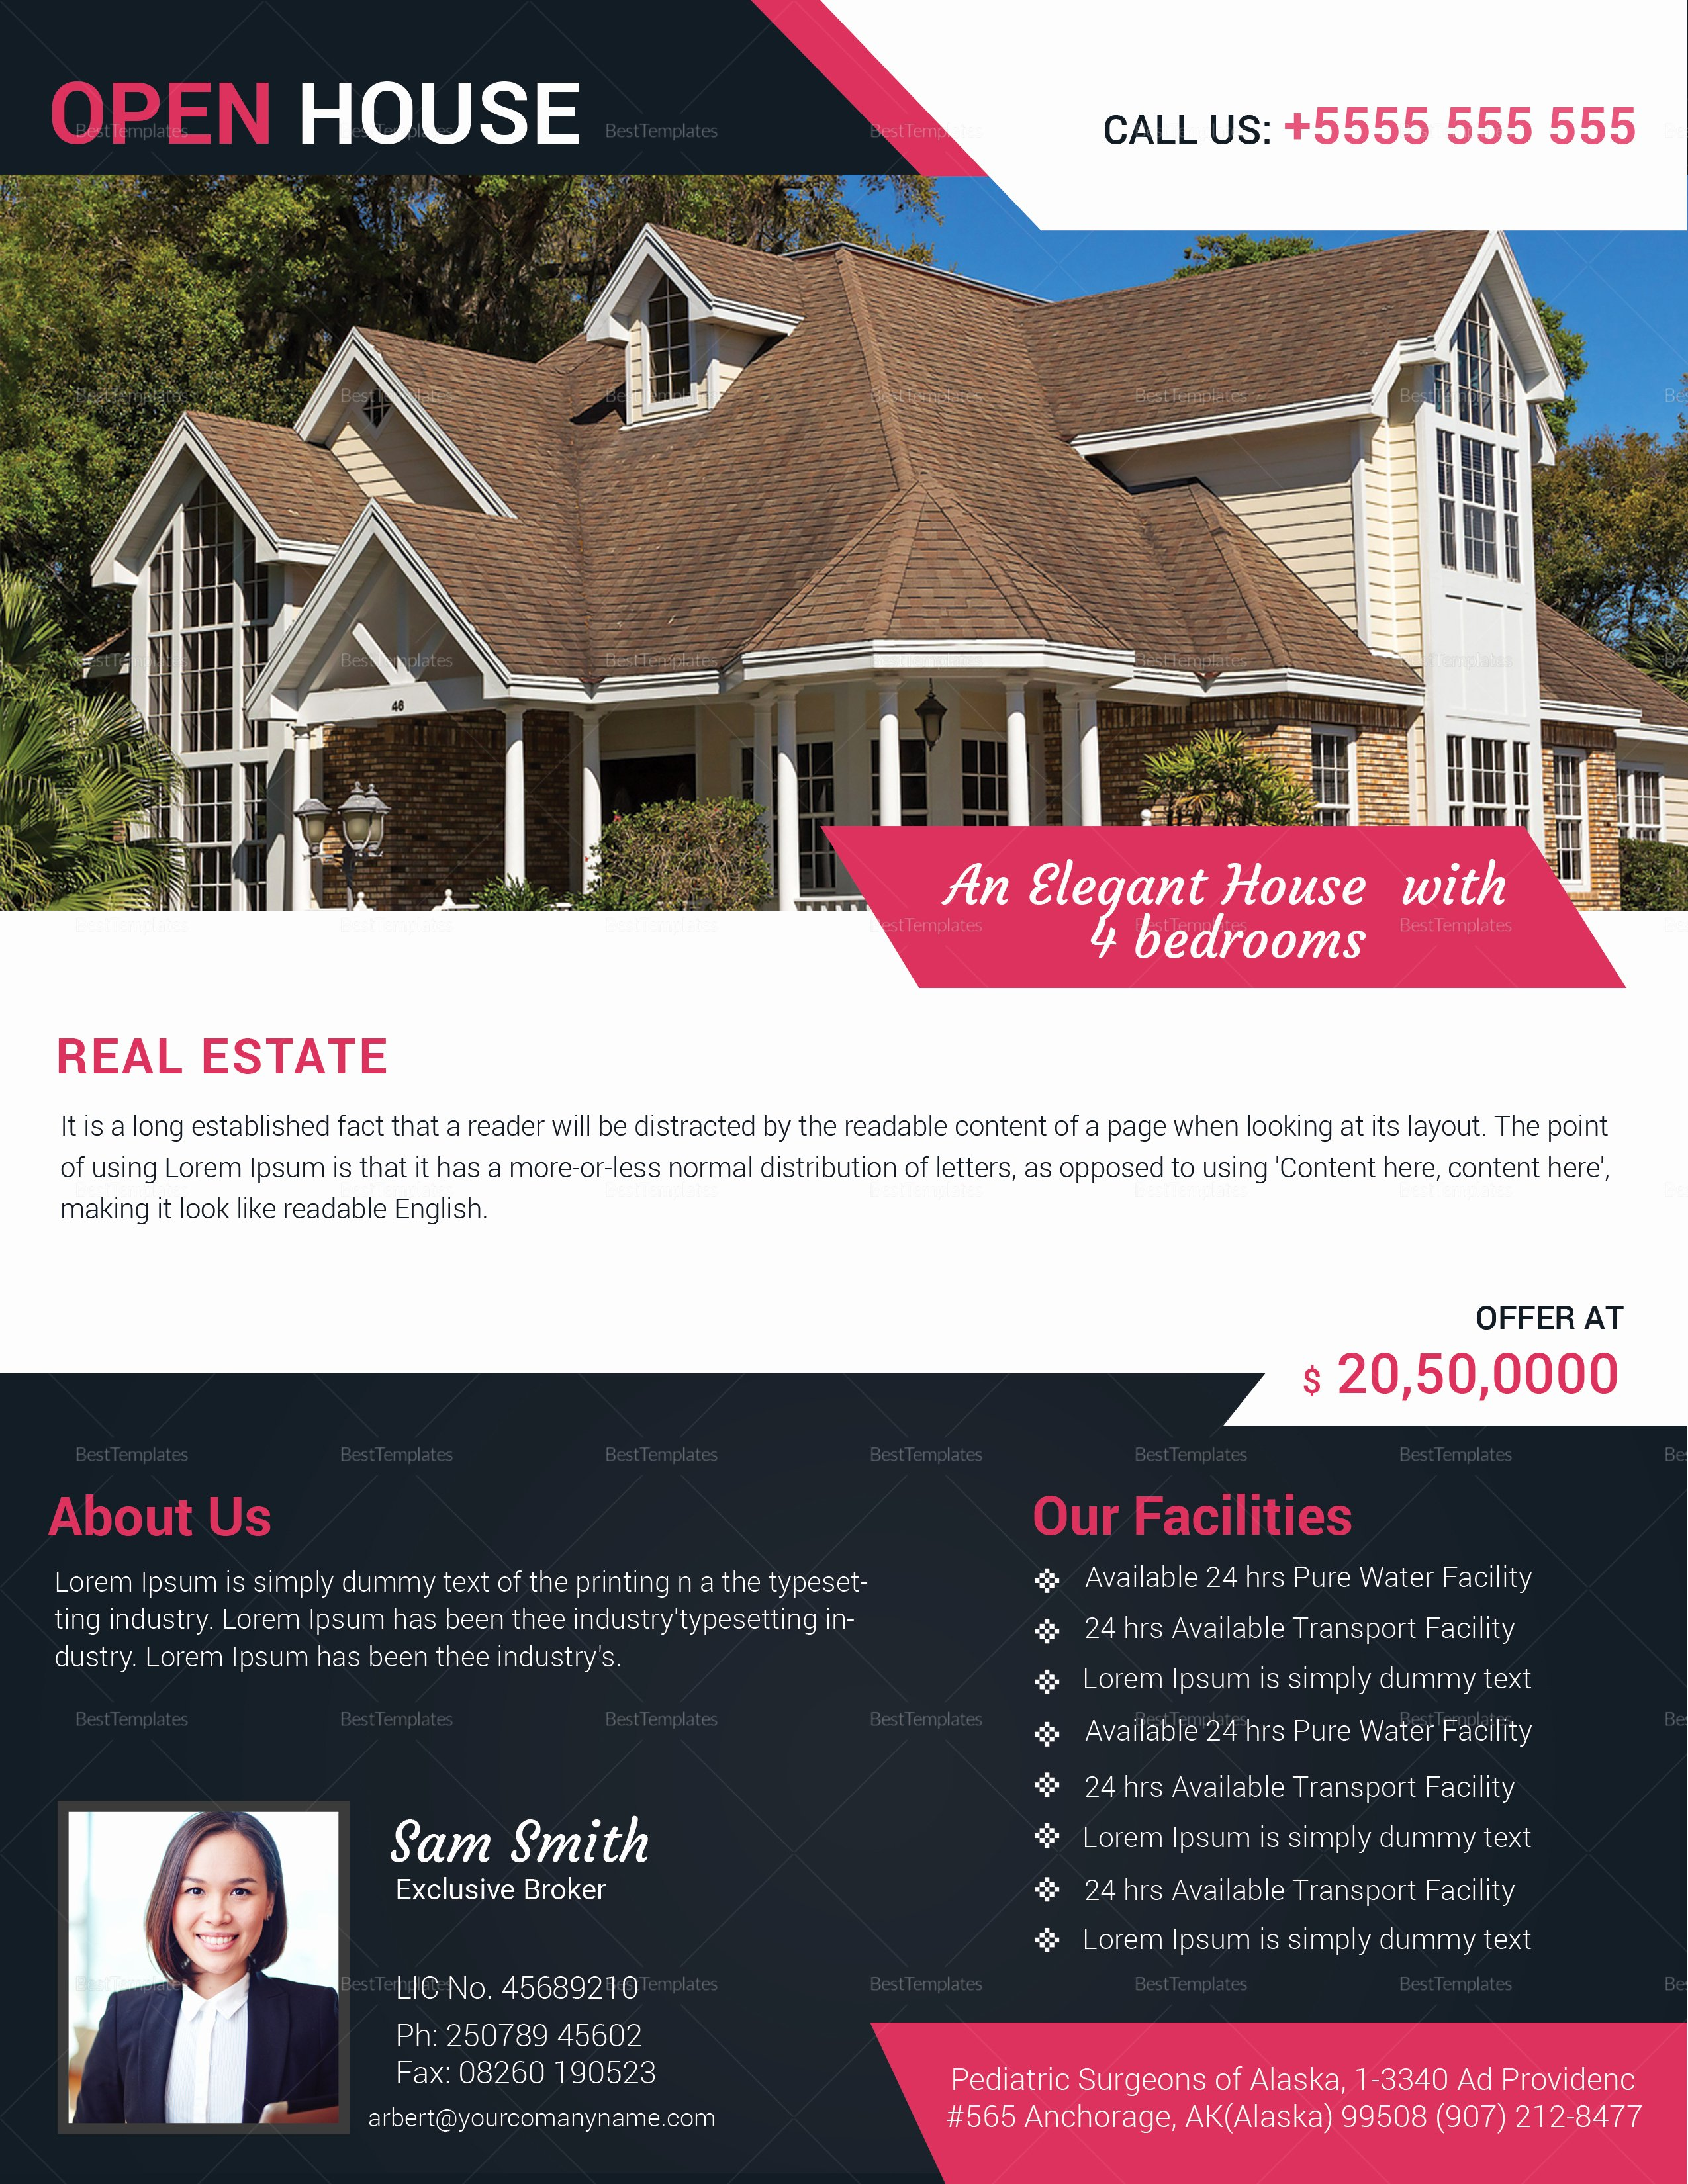 Open House Flyers Template Beautiful Realtor Open House Flyer Design Template In Word Psd